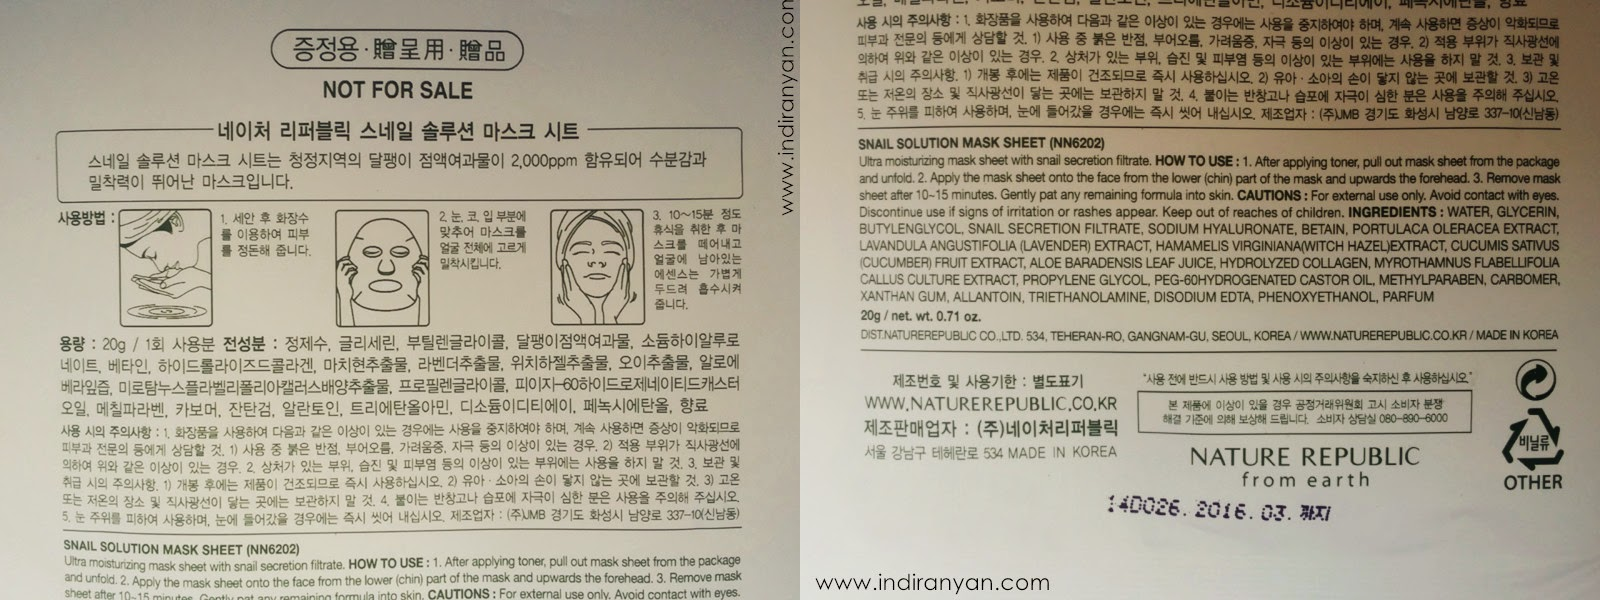 Nature Republic - Snail Solution Mask Sheet